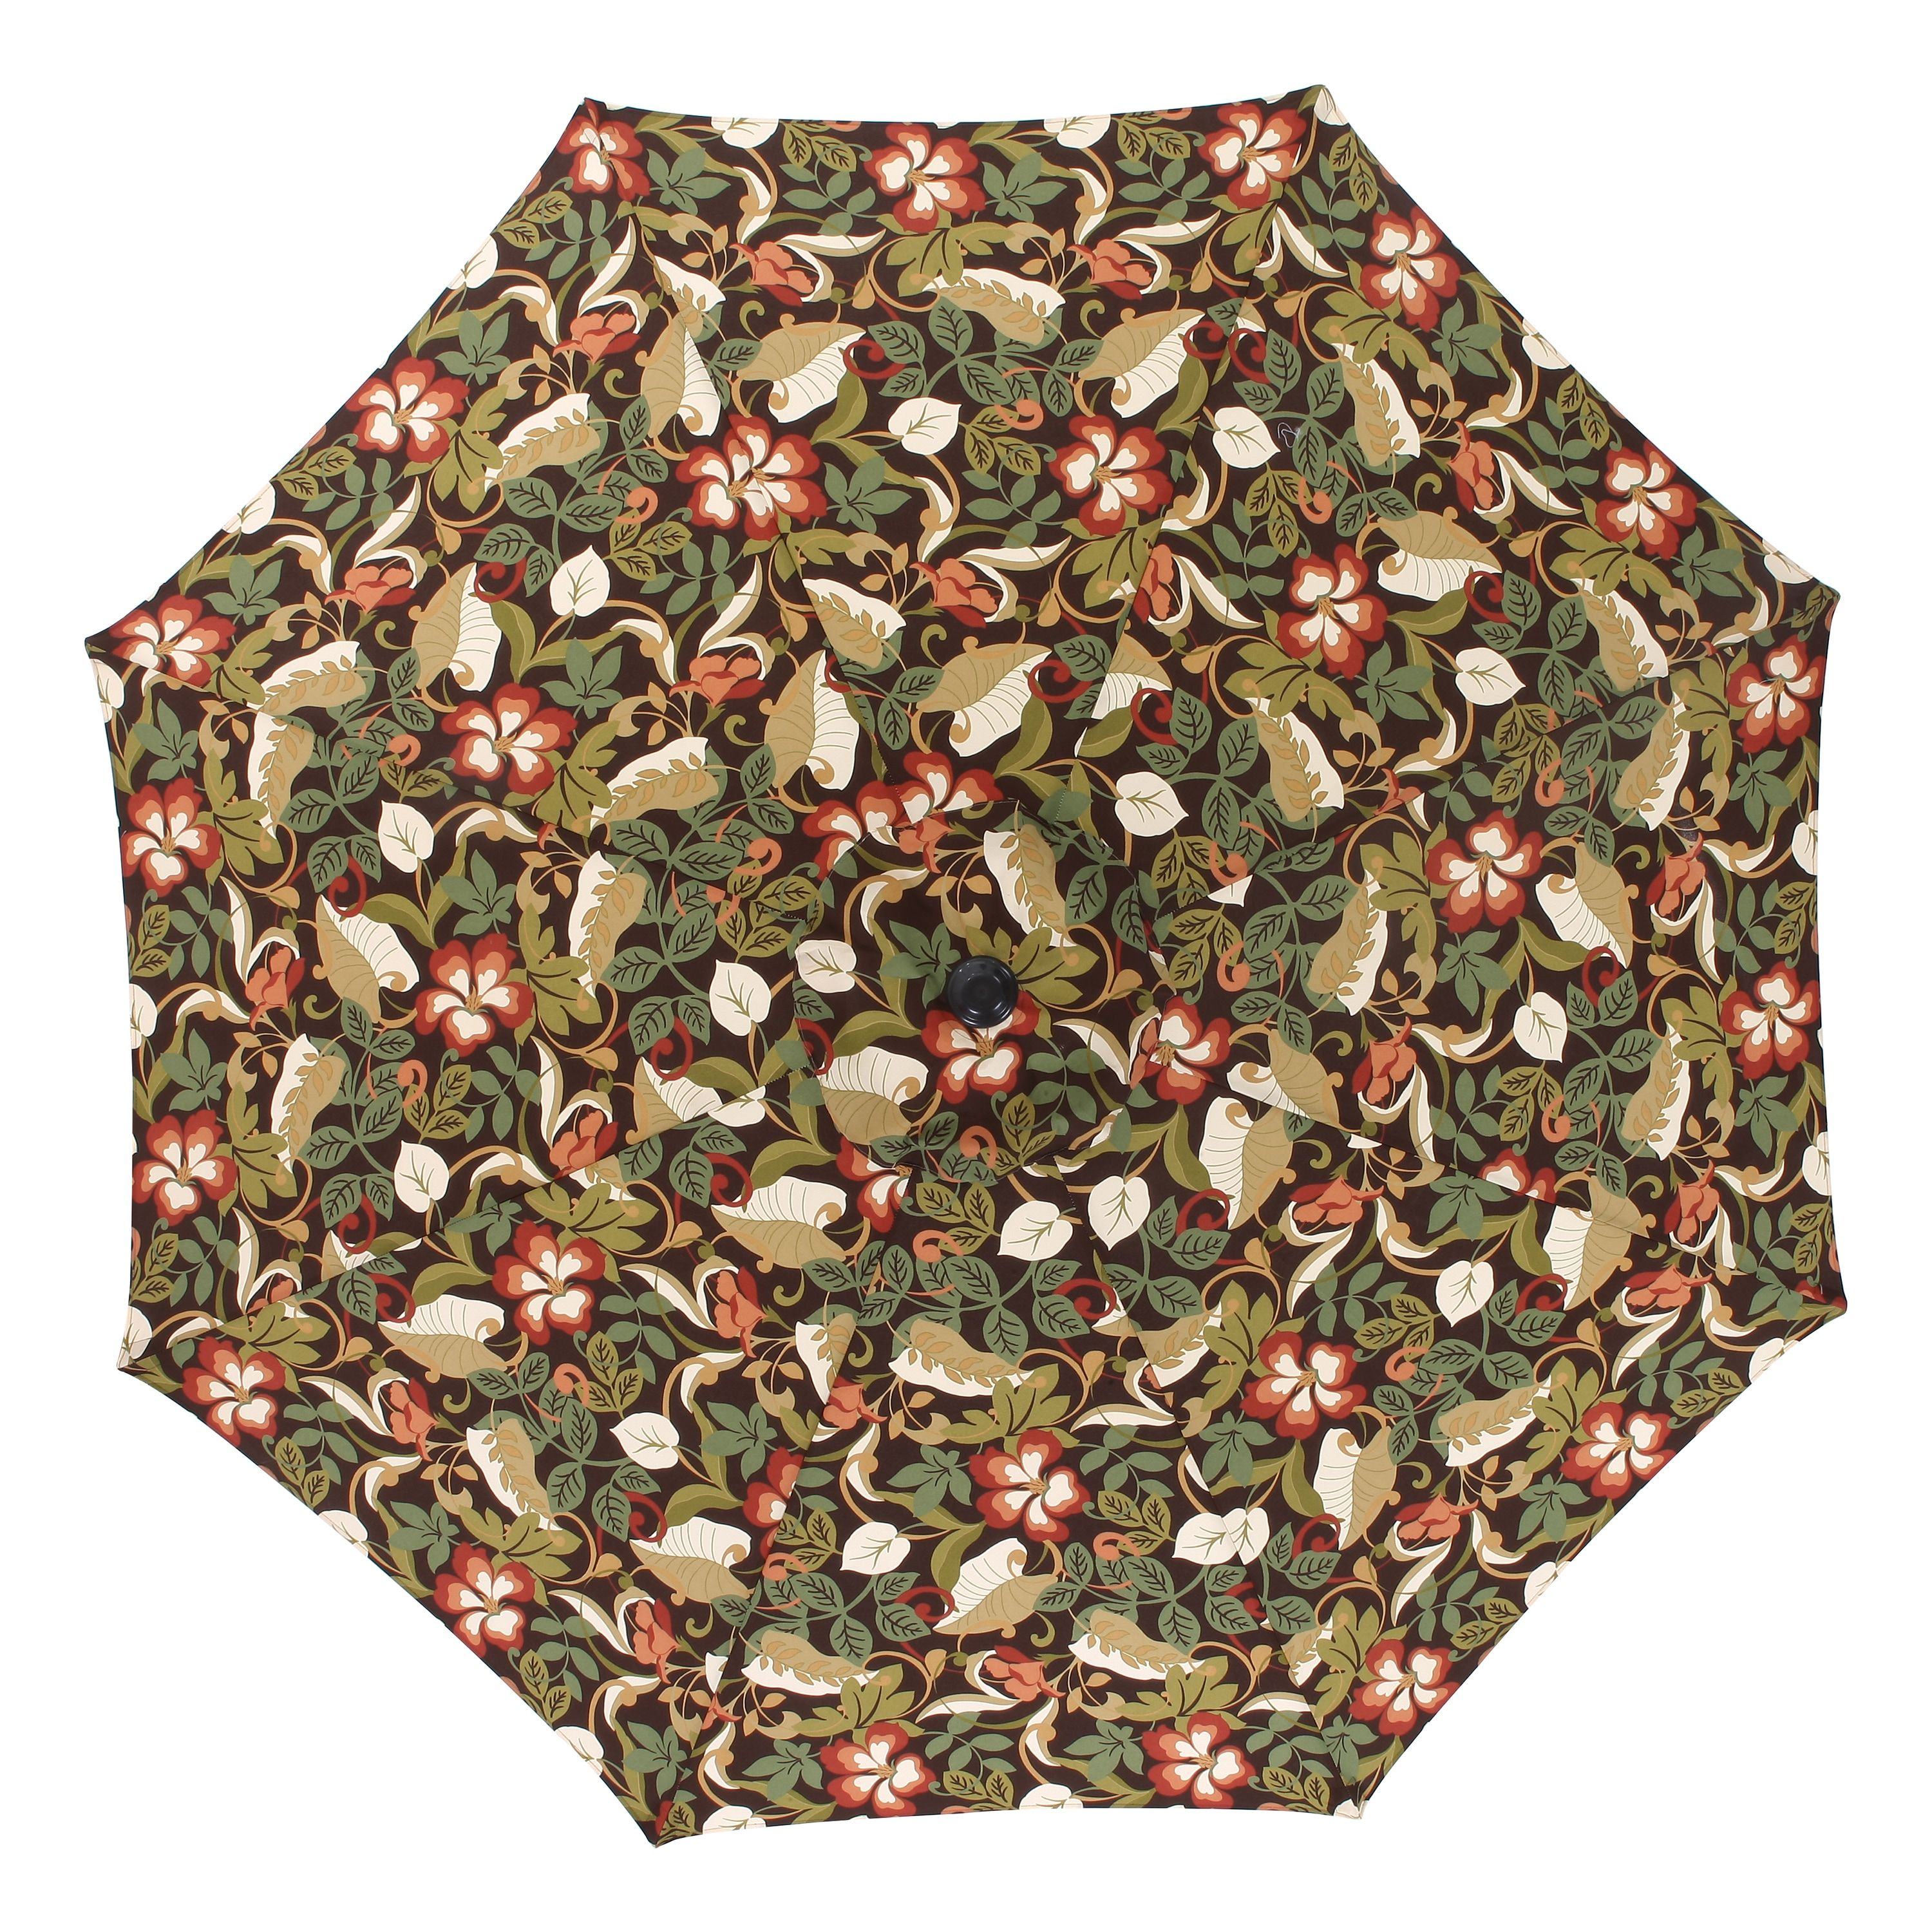 Pillow Perfect Coventry Brown 9foot Patio Market Umbrella